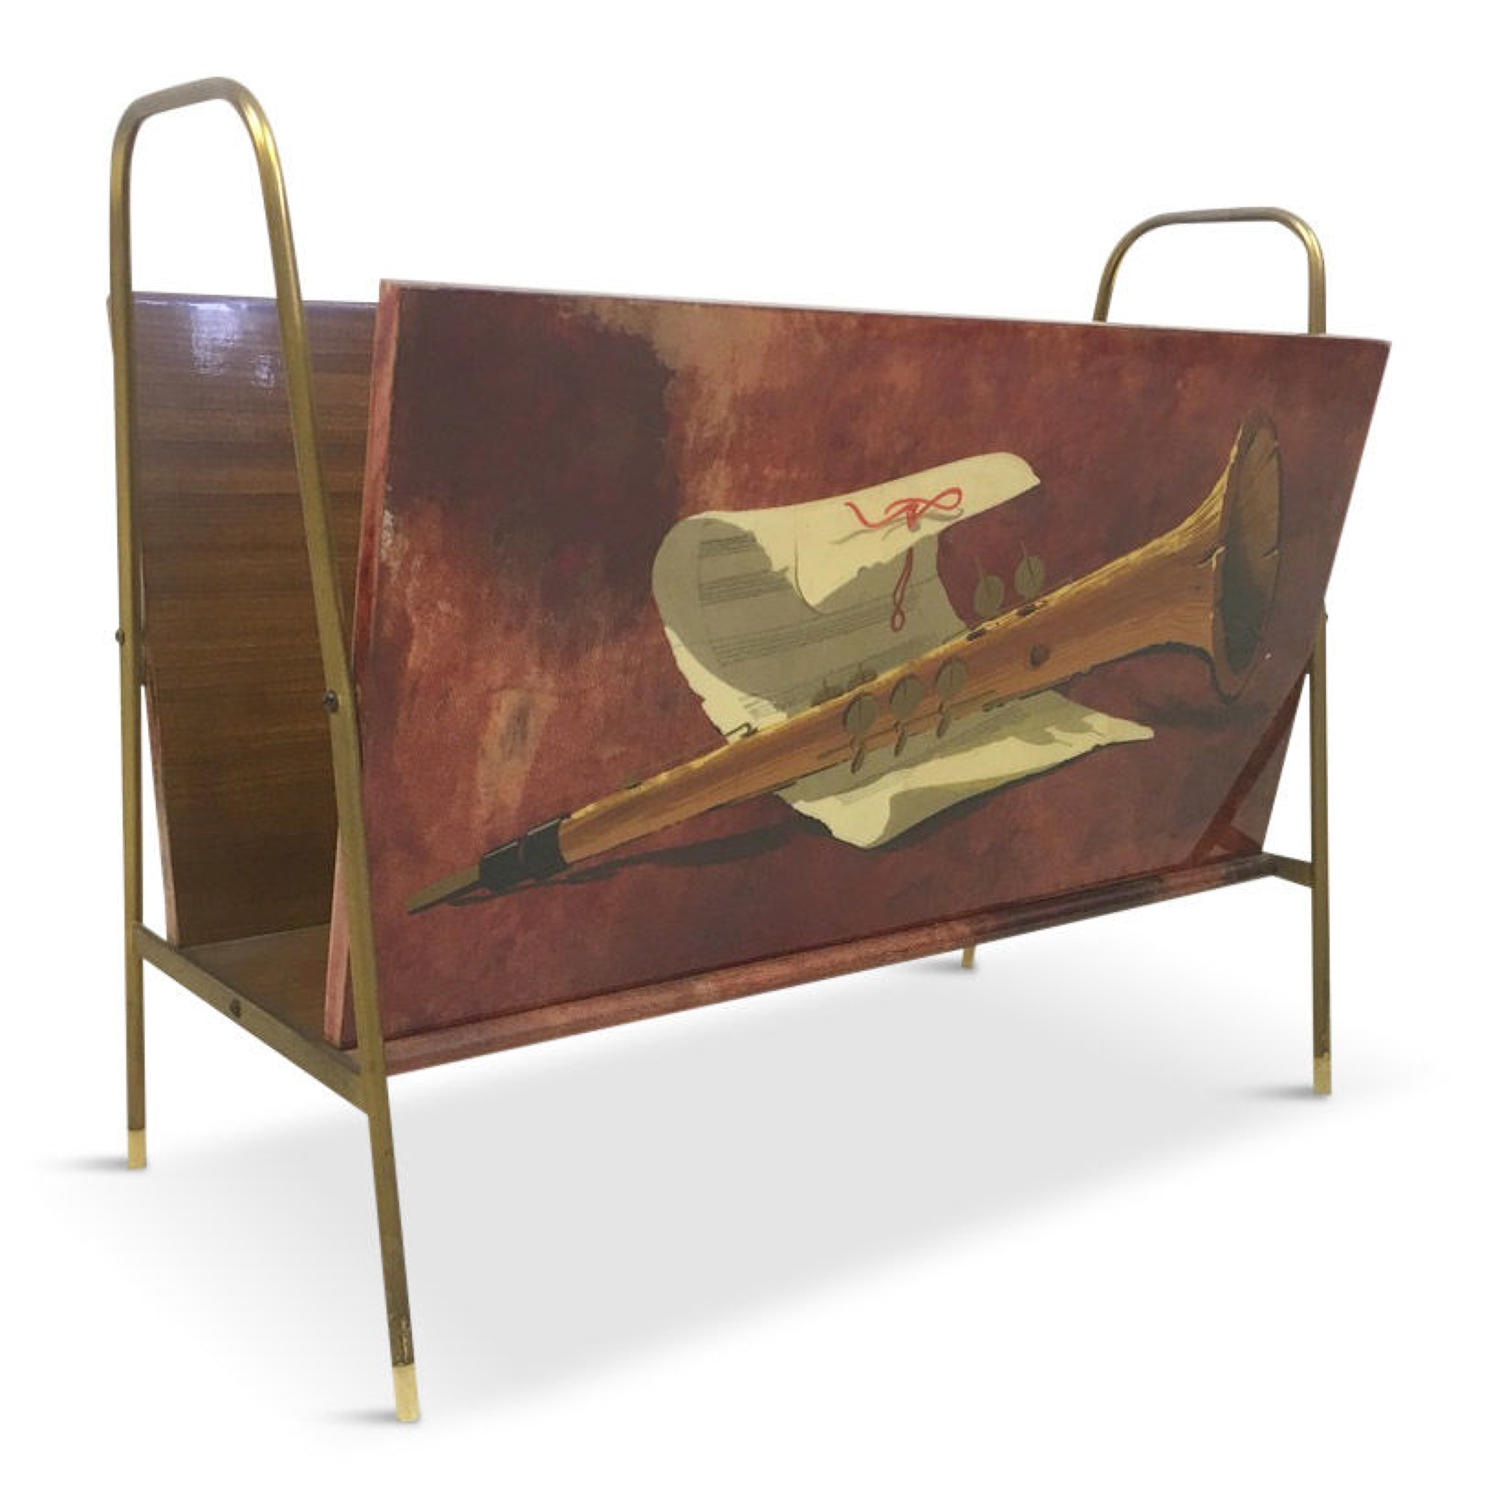 1960s Italian lacquered goatskin and brass magazine rack